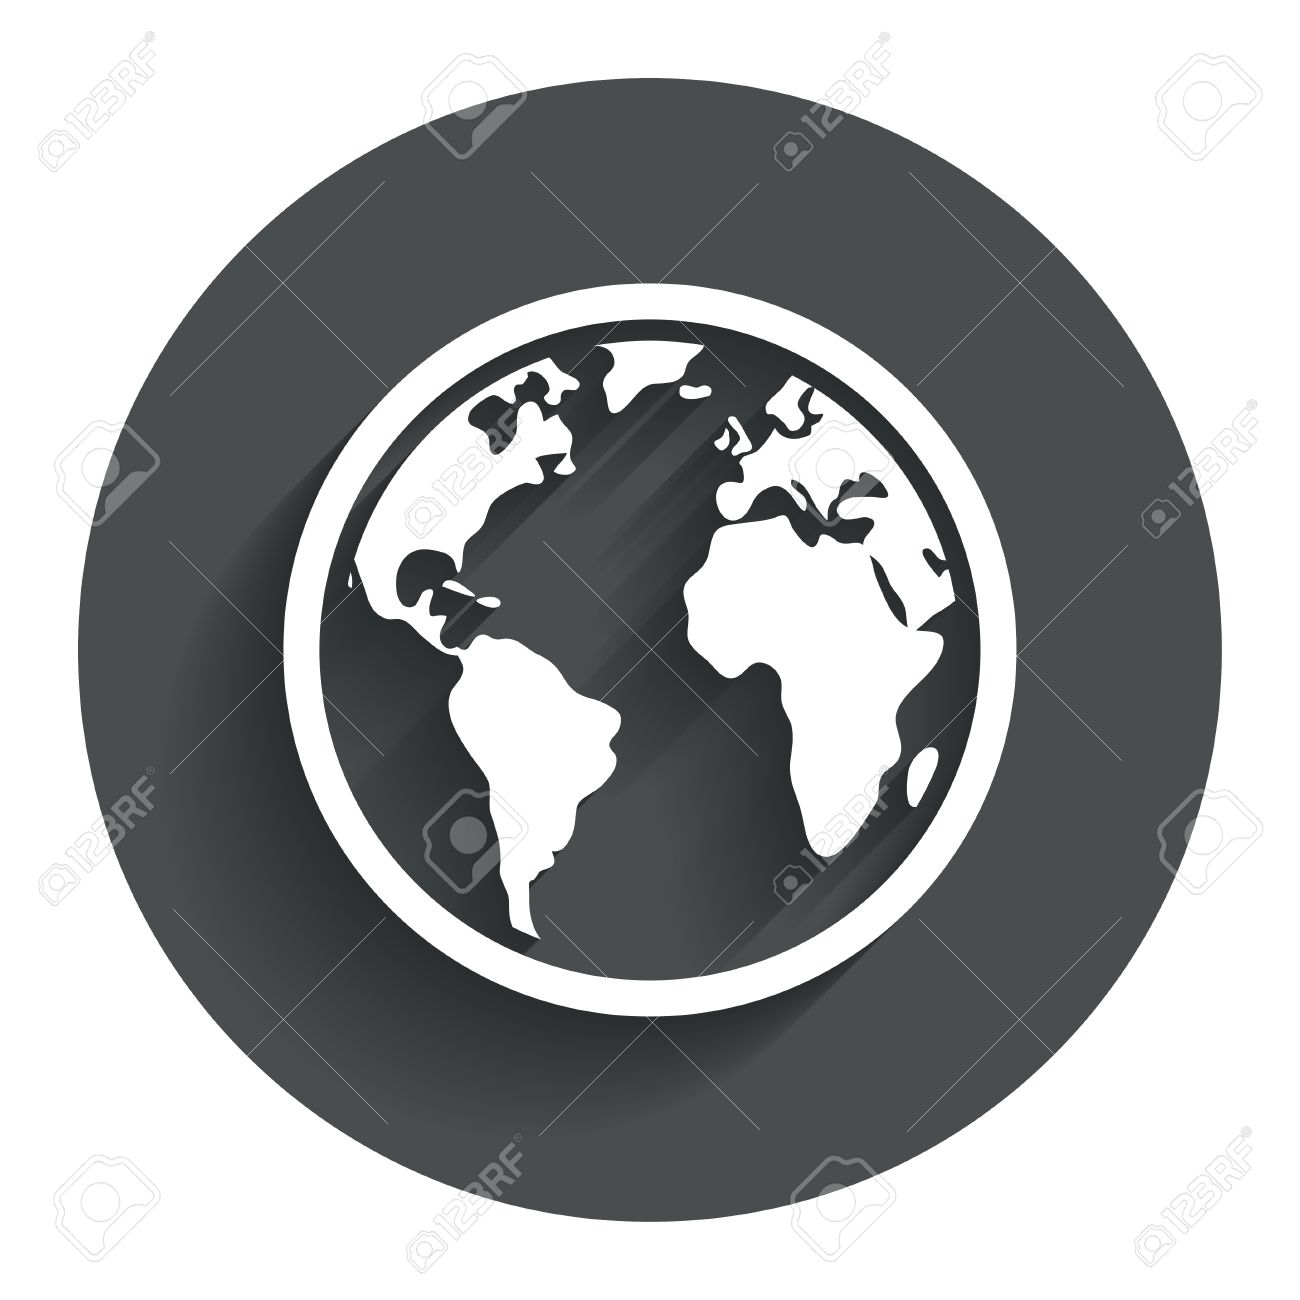 Globe sign icon world map geography symbol circle flat button world map geography symbol circle flat button with shadow modern gumiabroncs Images